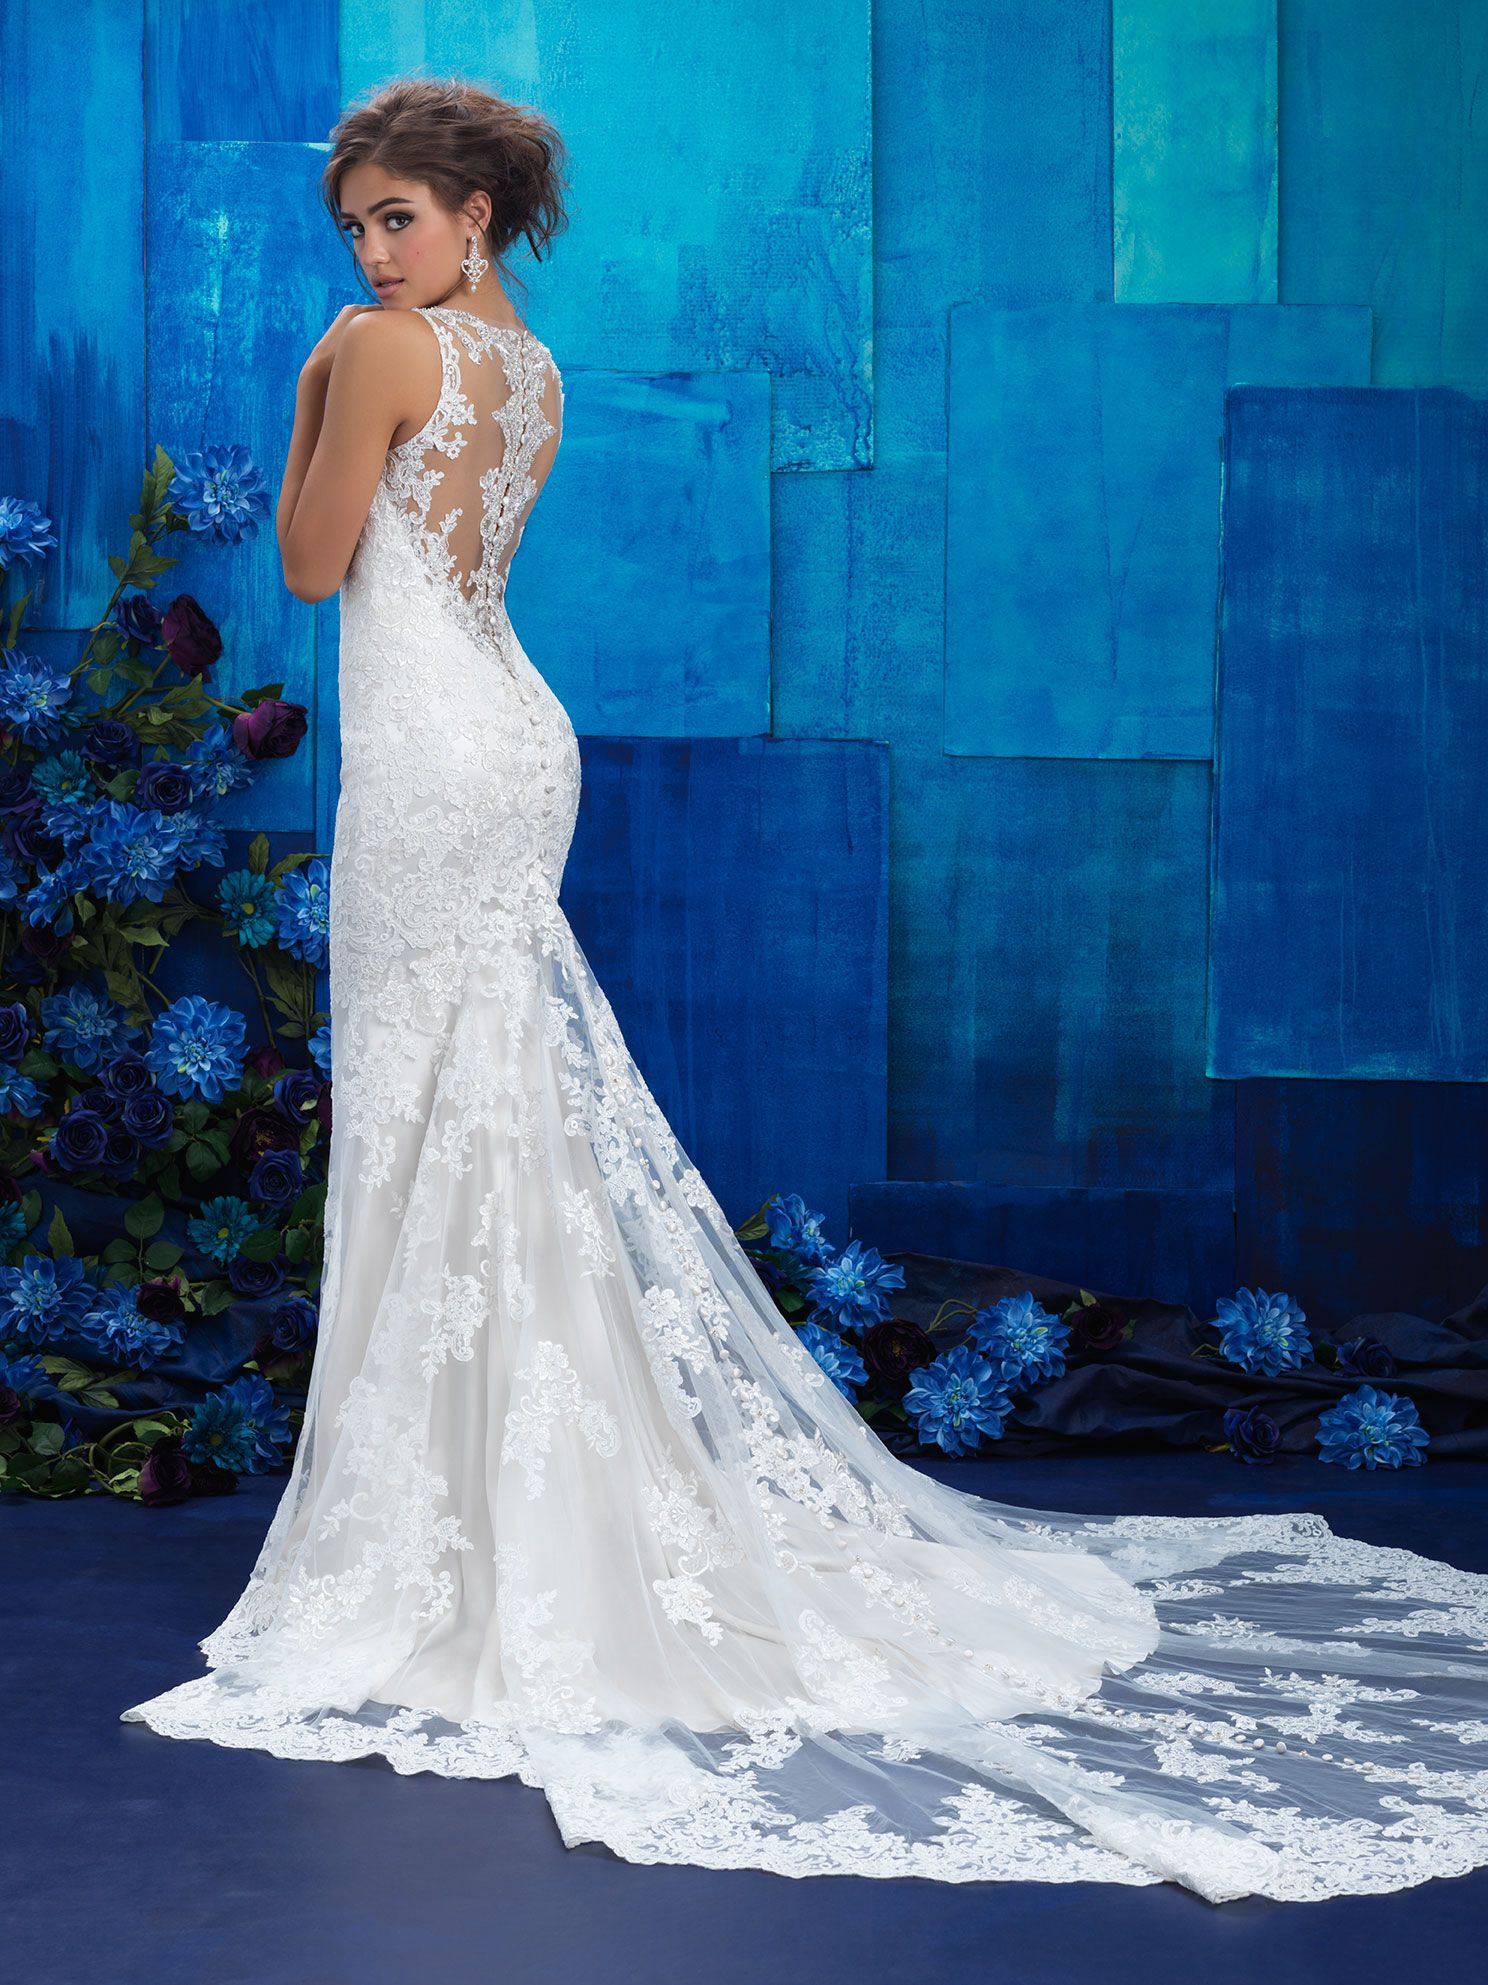 Allure Bridal Gowns available at Nikki\'s! | Allure Bridal Gowns ...